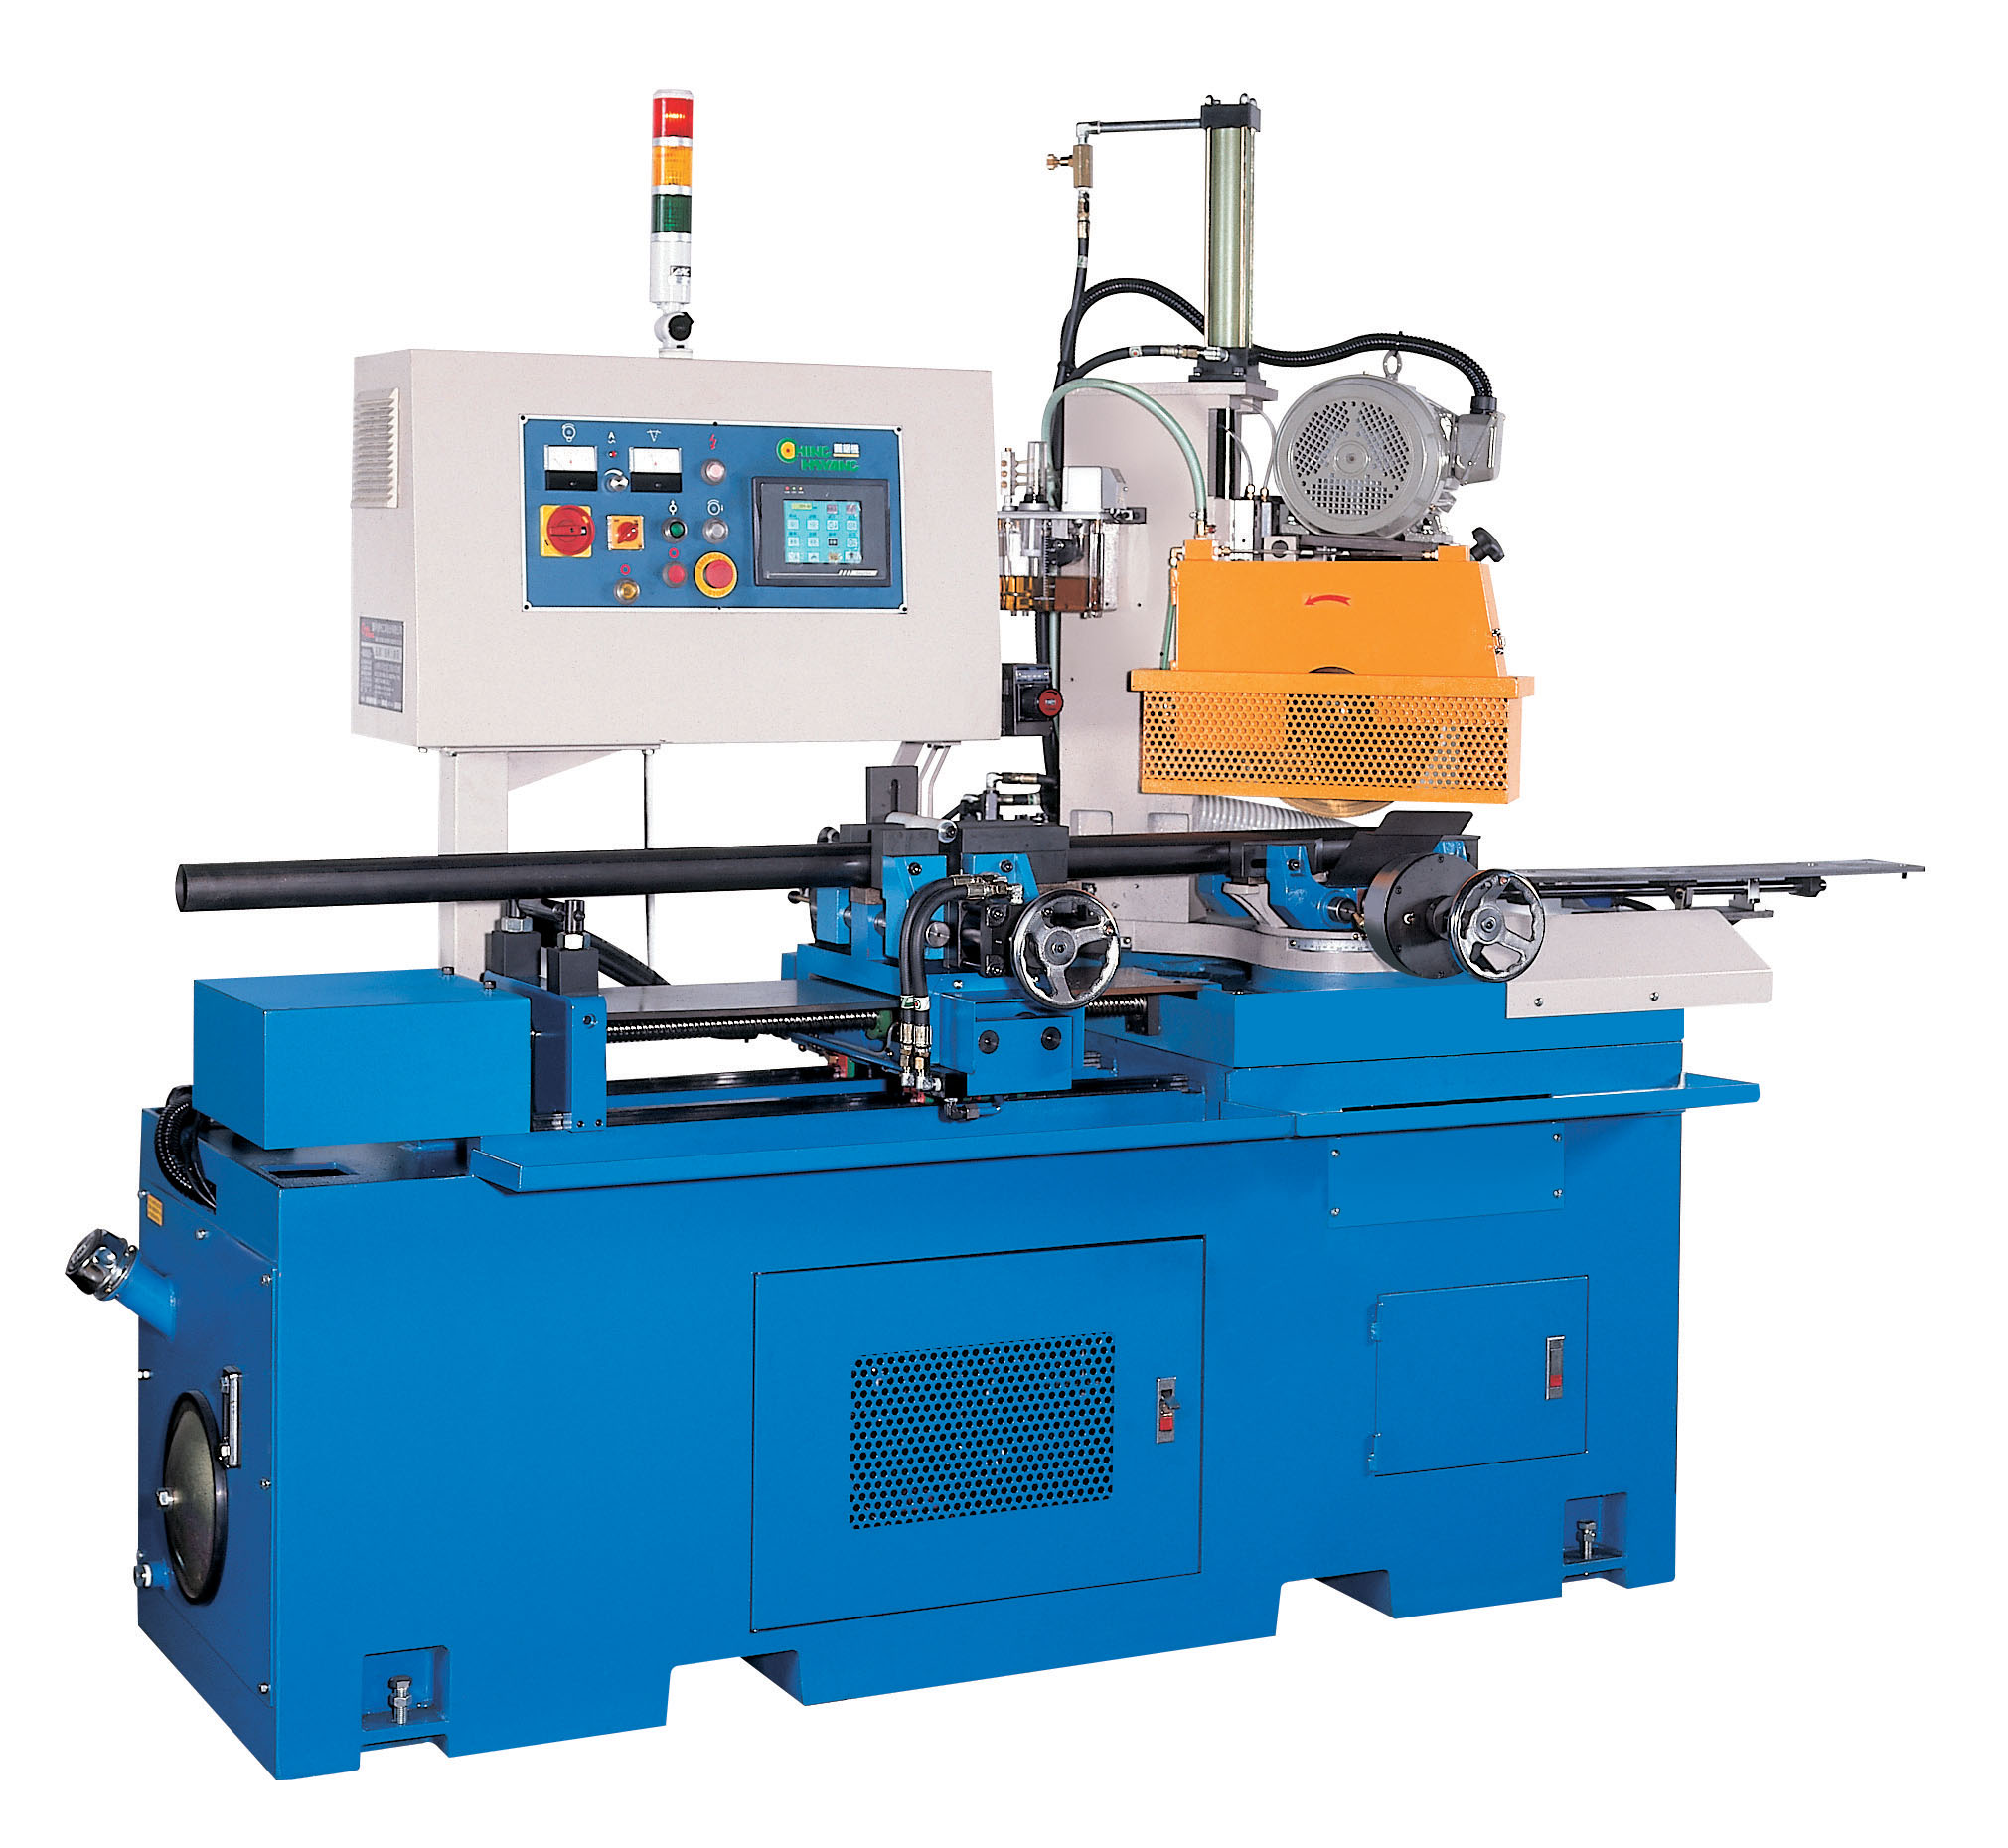 NC AUTOMATIC TYPE ANGULAR CIRCULAR SAWING MACHINE